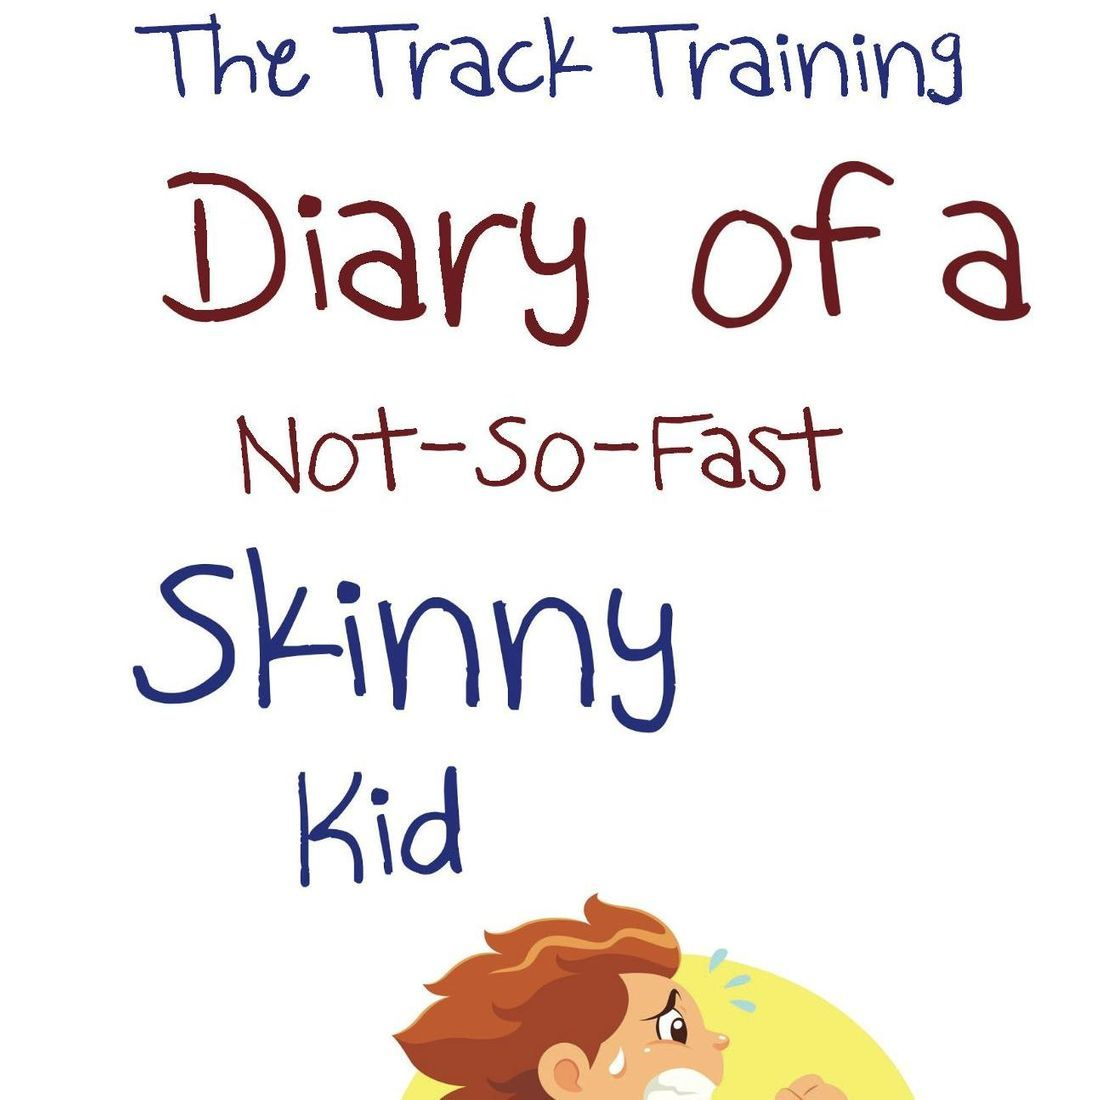 Skinny Kid, Diary of a, Skinny, #ShelfLife #middleschool #summerreading #amreading #goodreads #writersofinstagram #happybookpubday#FCPLstories #ForsythReadsKid, #Bookstoread